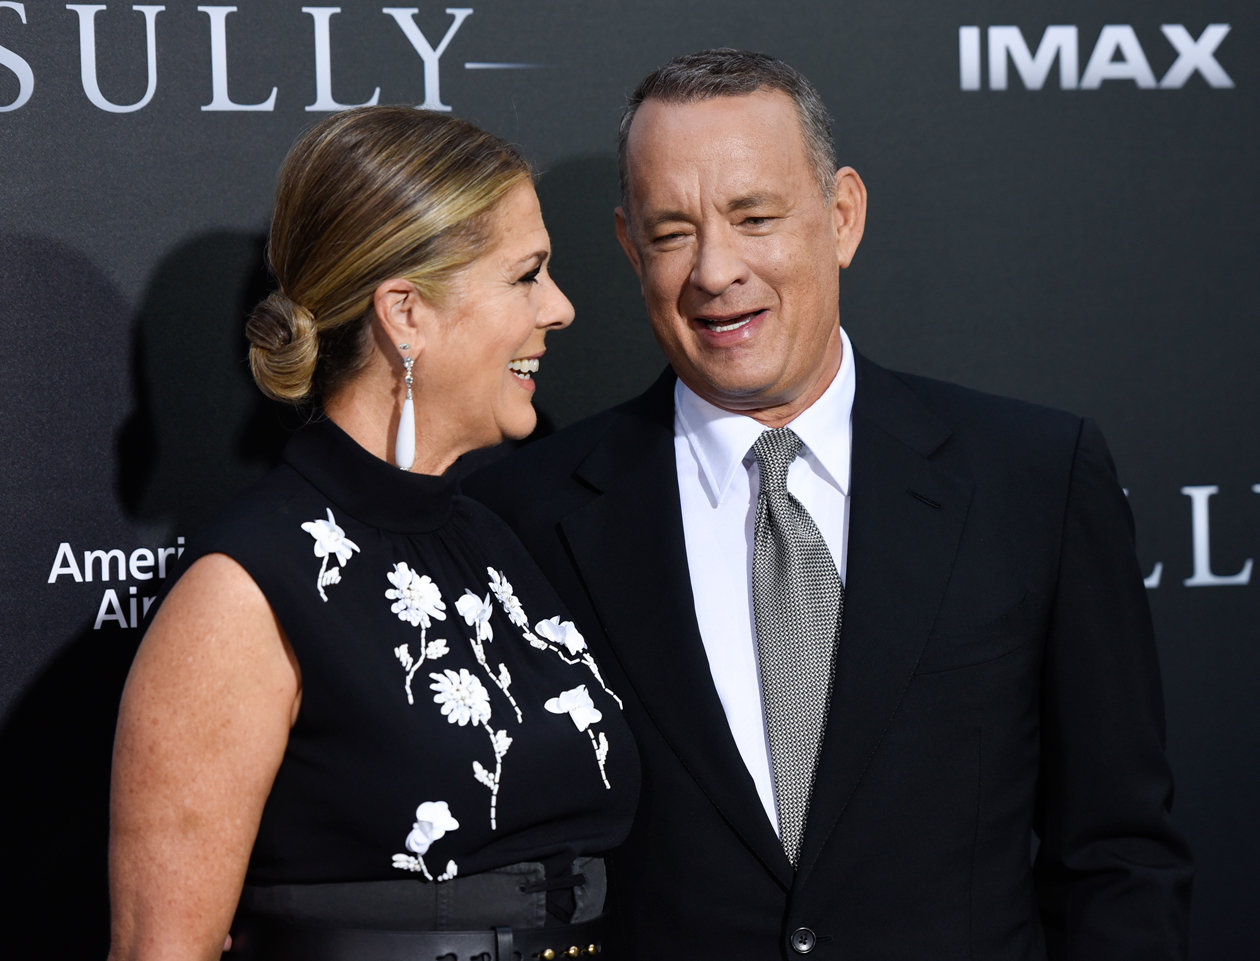 Tom Hanks and Rita Wilson at Sully Premiere - Embed